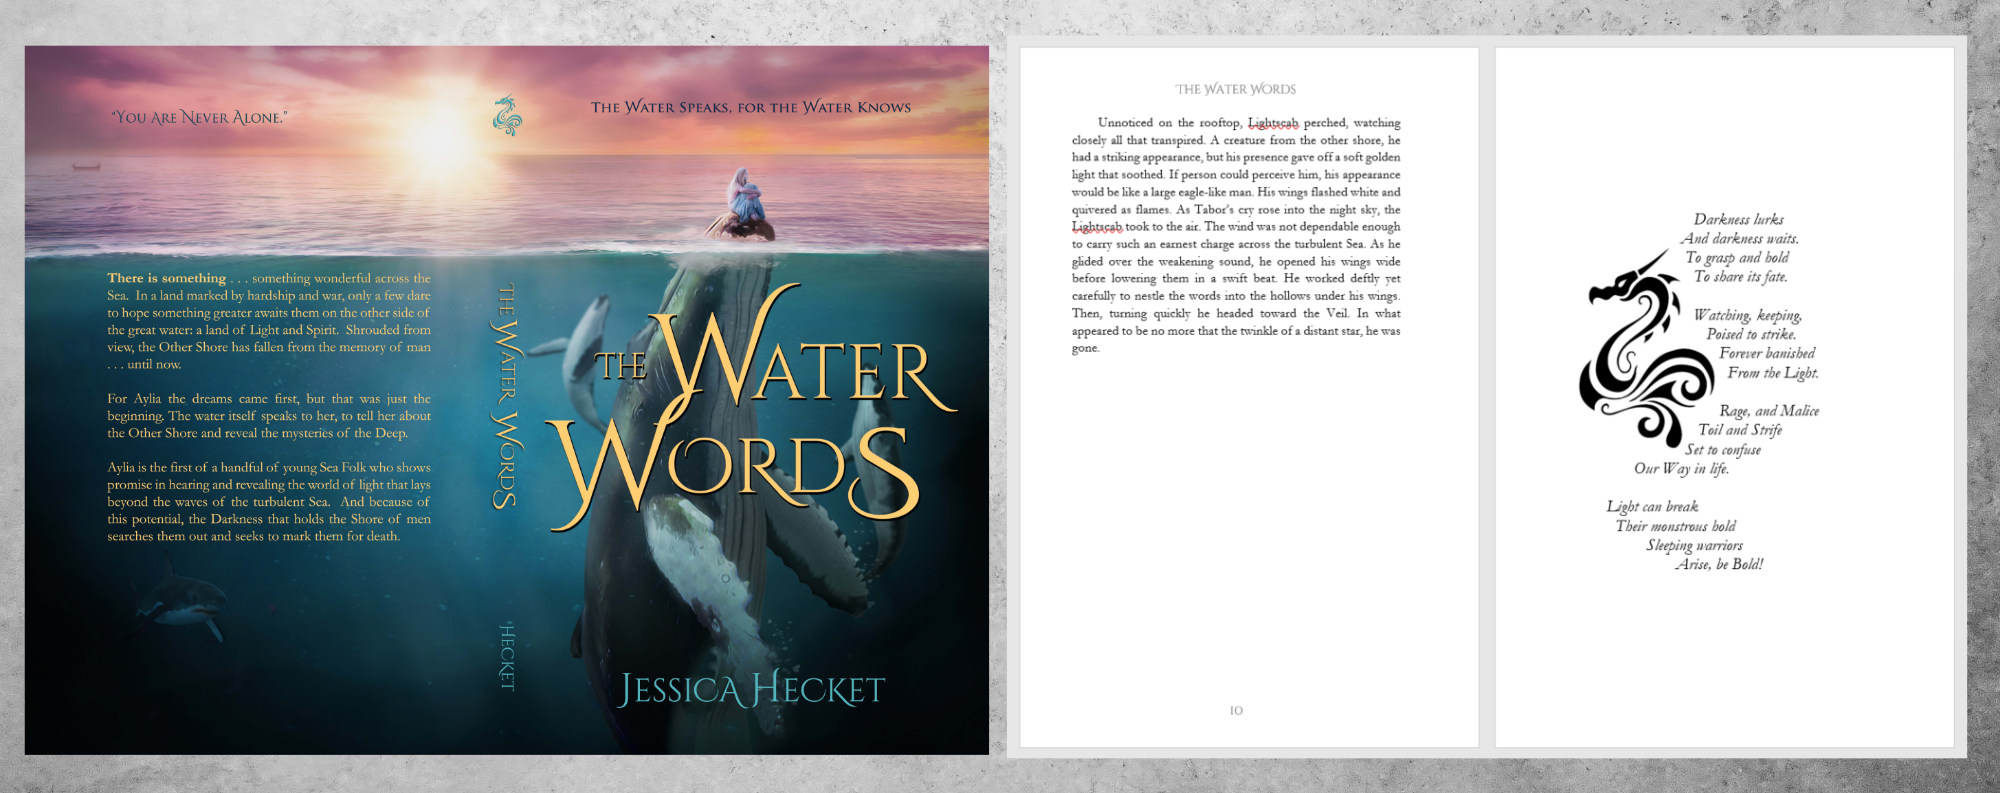 Example image of book Water Words by Jessica Hecket